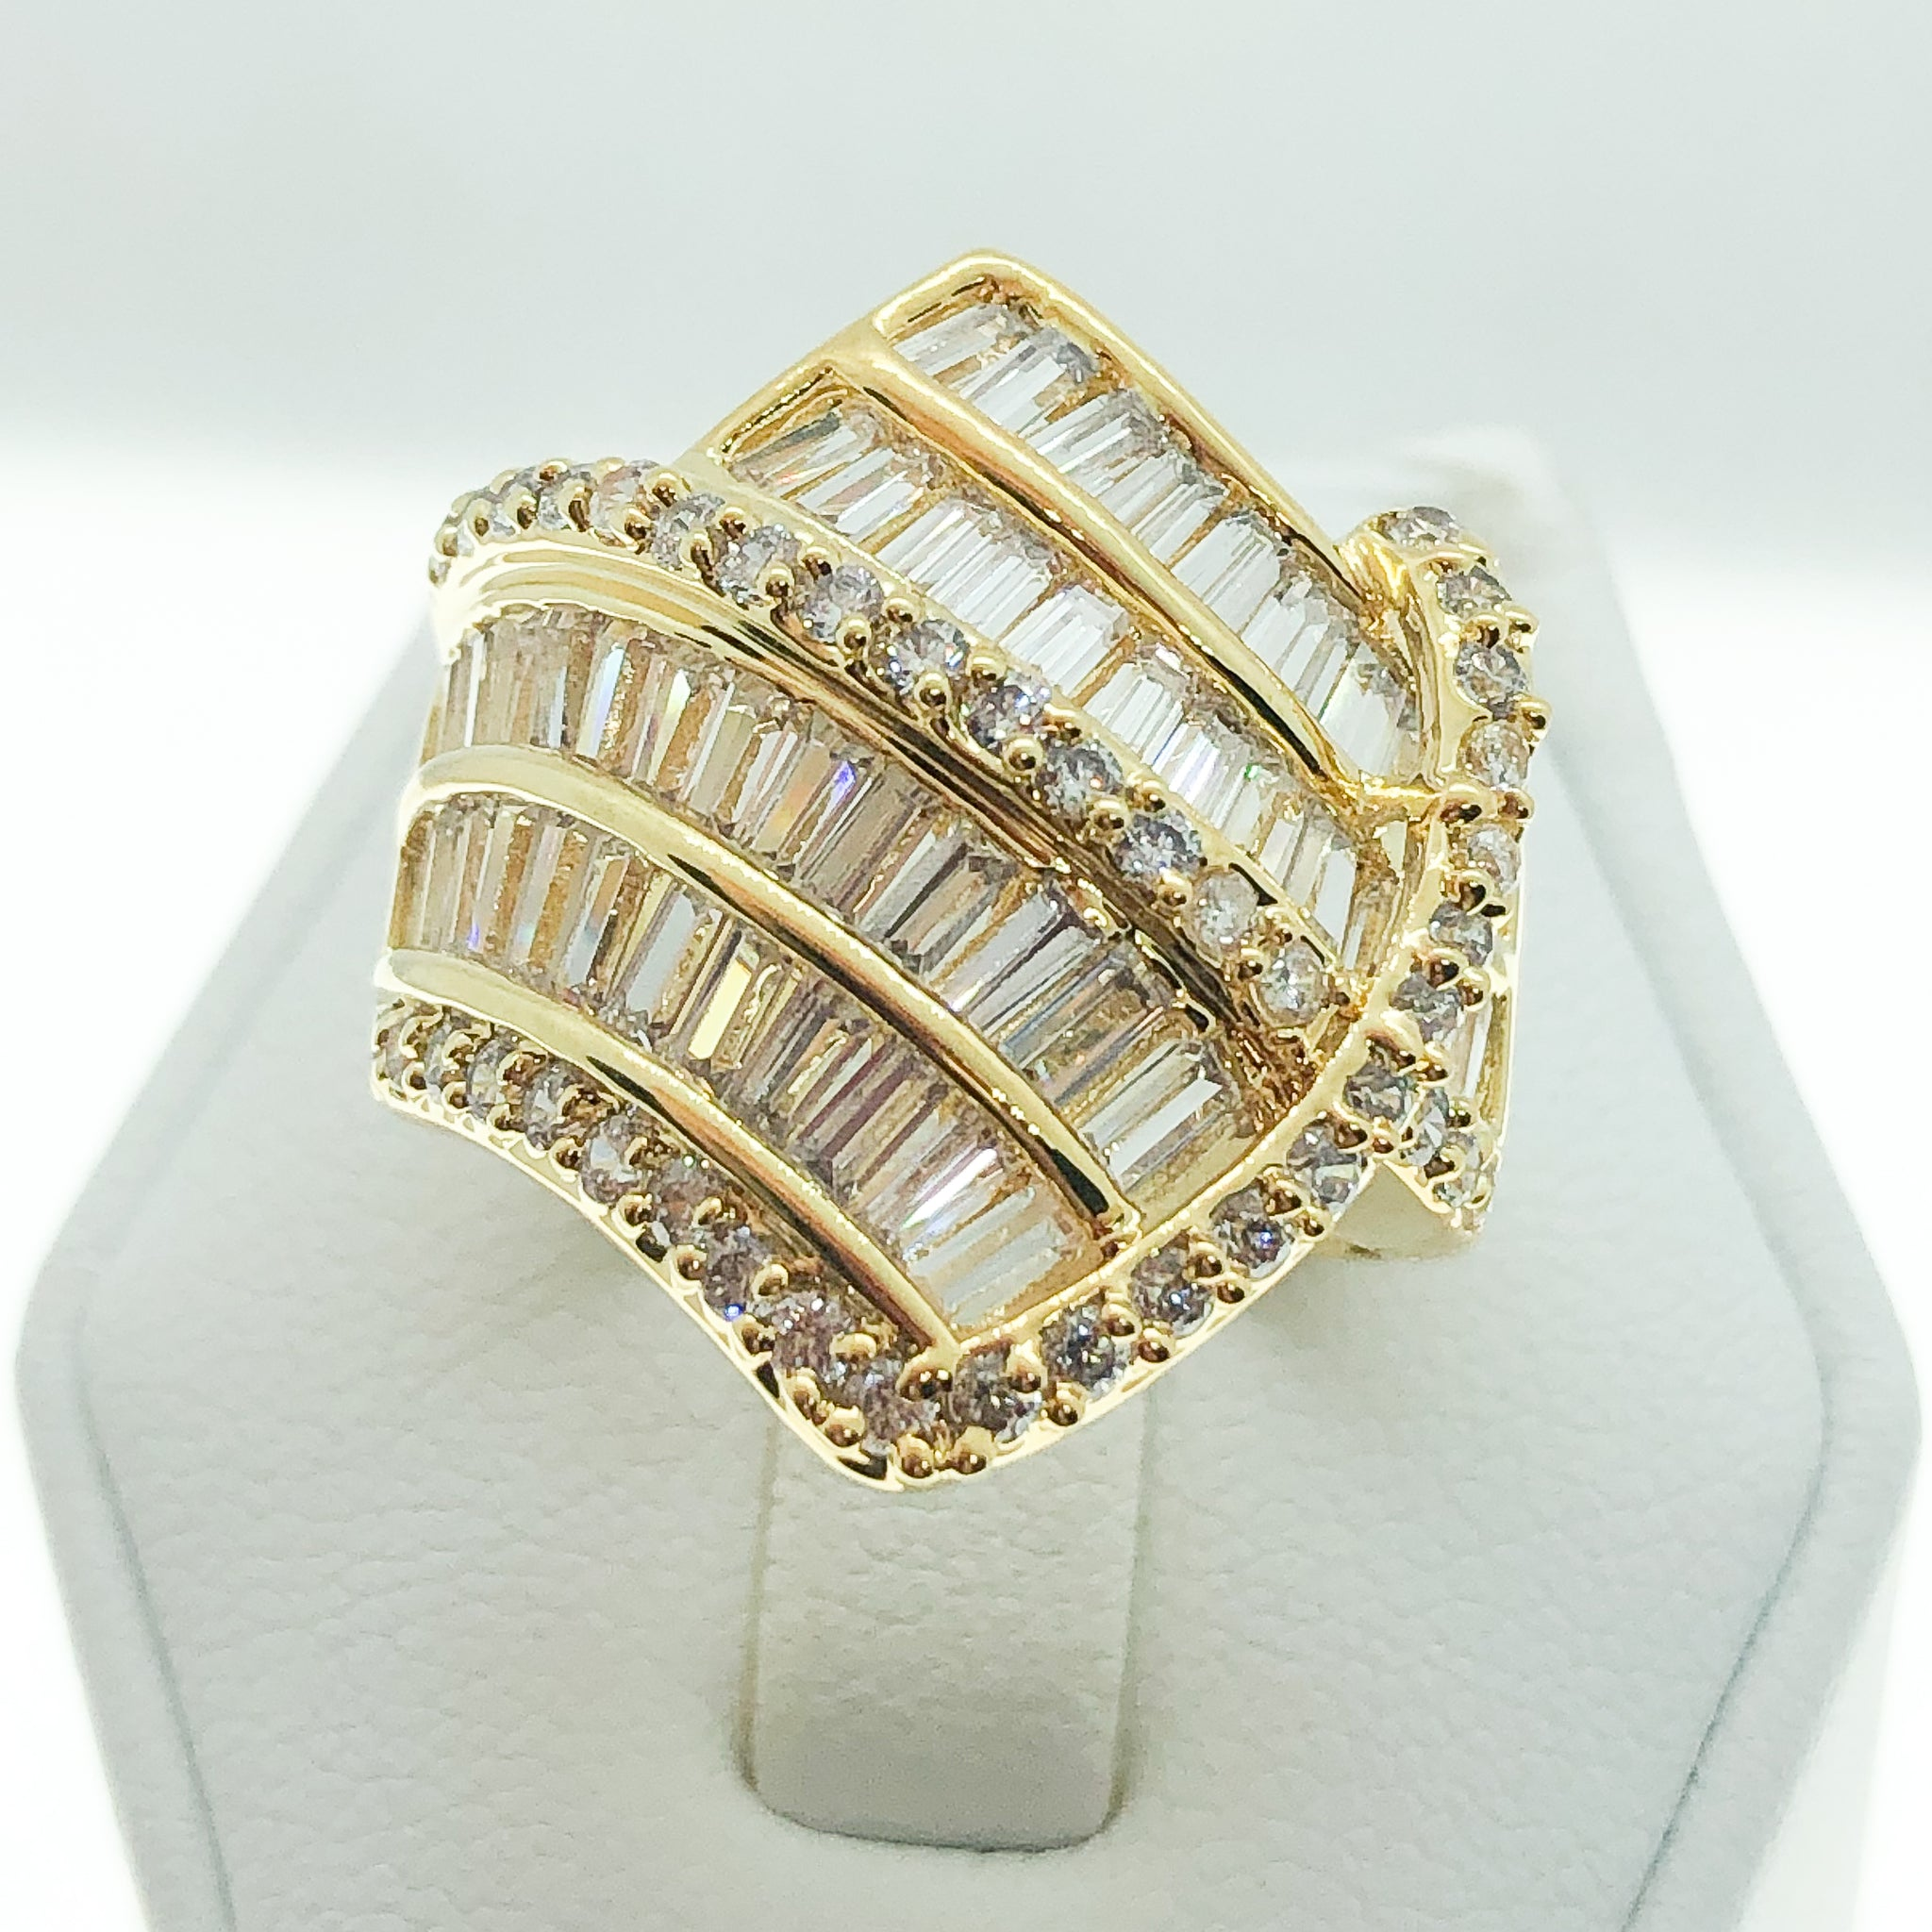 ID:R2773 Women Vintage Jewelry 18K Yellow Gold GF Nice-Looking Handmade Engagement Promise Anniversary Diamonique Ring